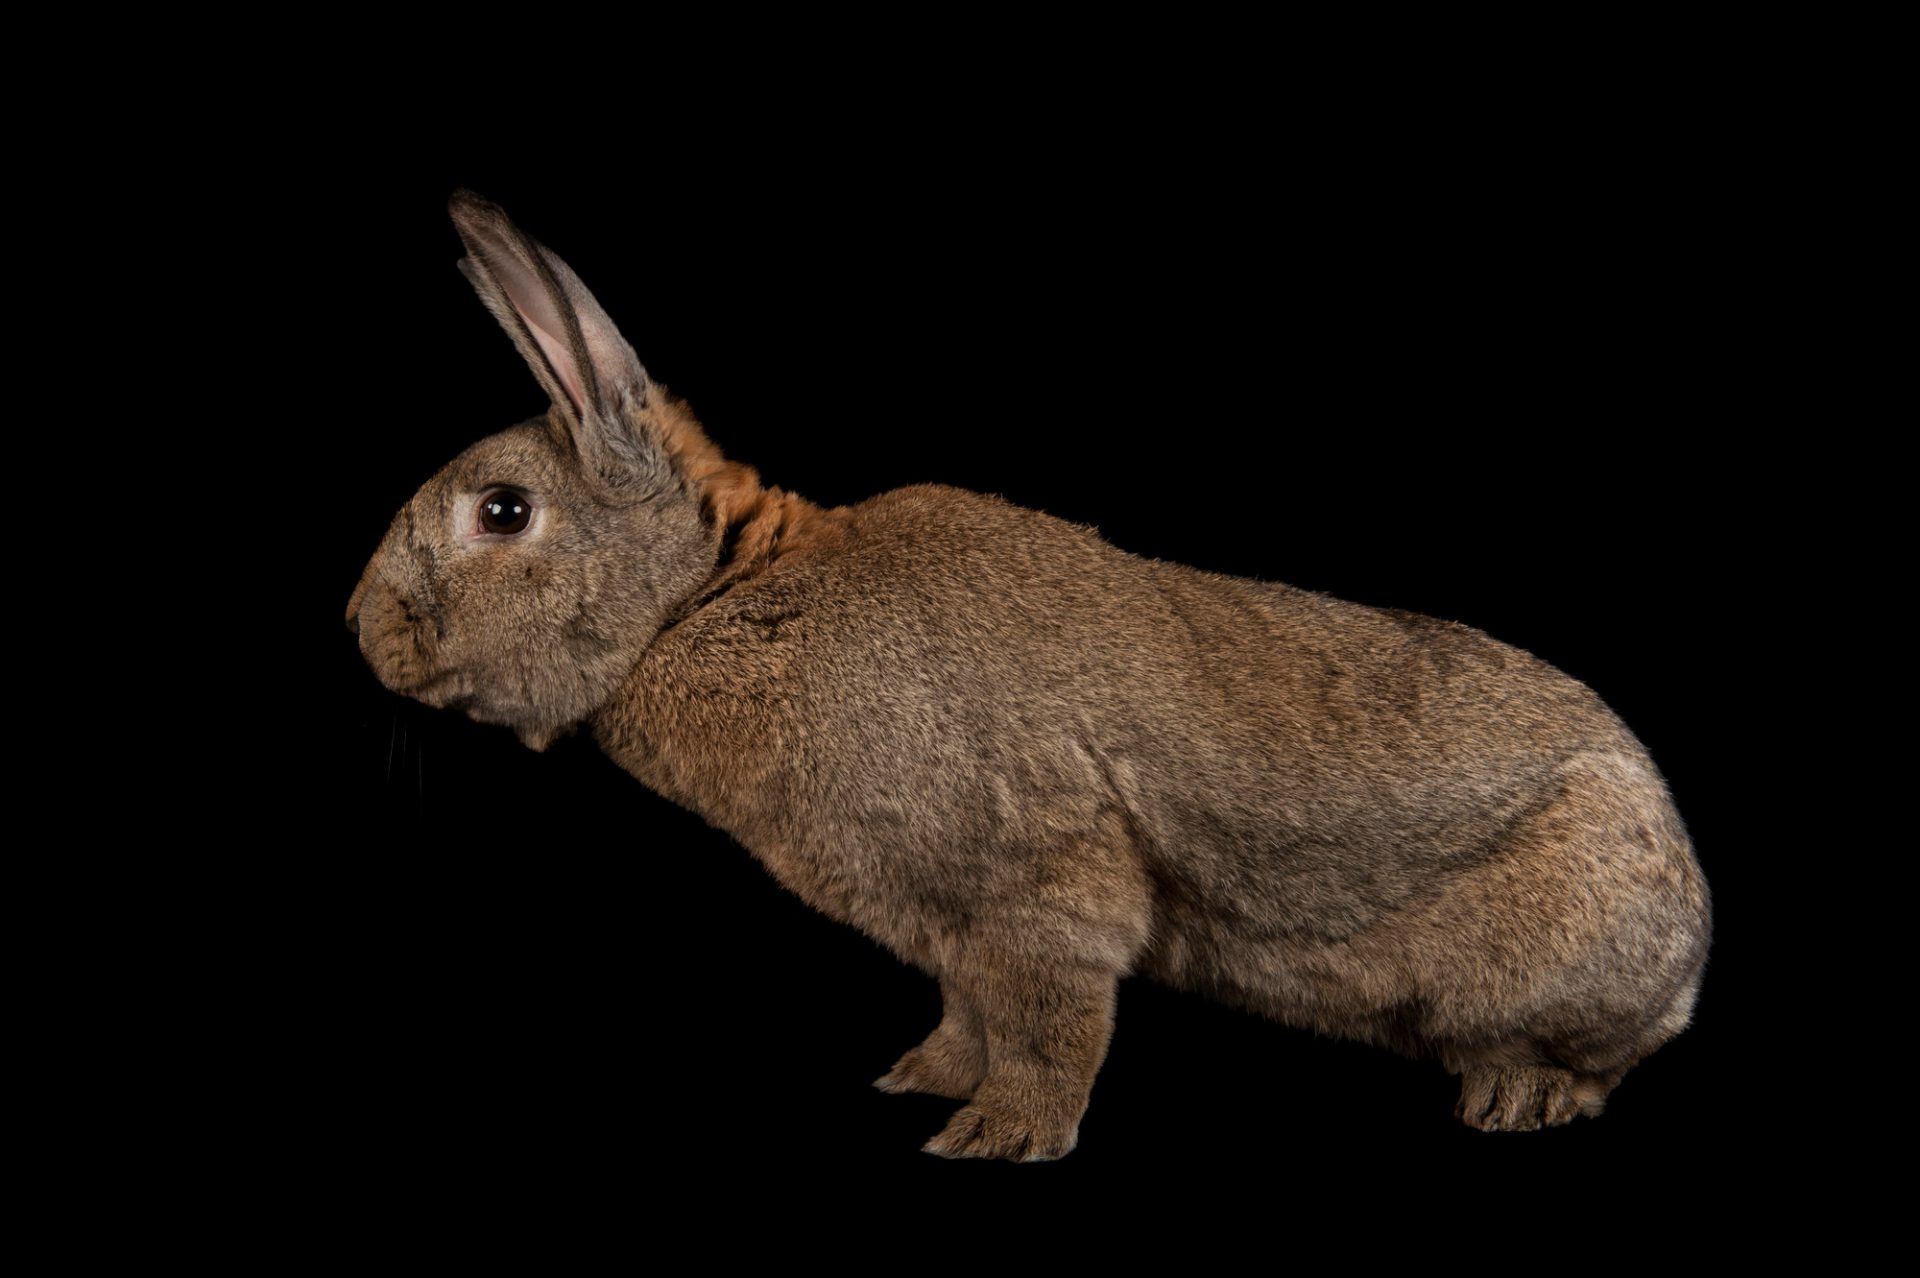 A giant Flemish rabbit (Oryctolagus cuniculus flemish) at the Fort Worth Zoo.